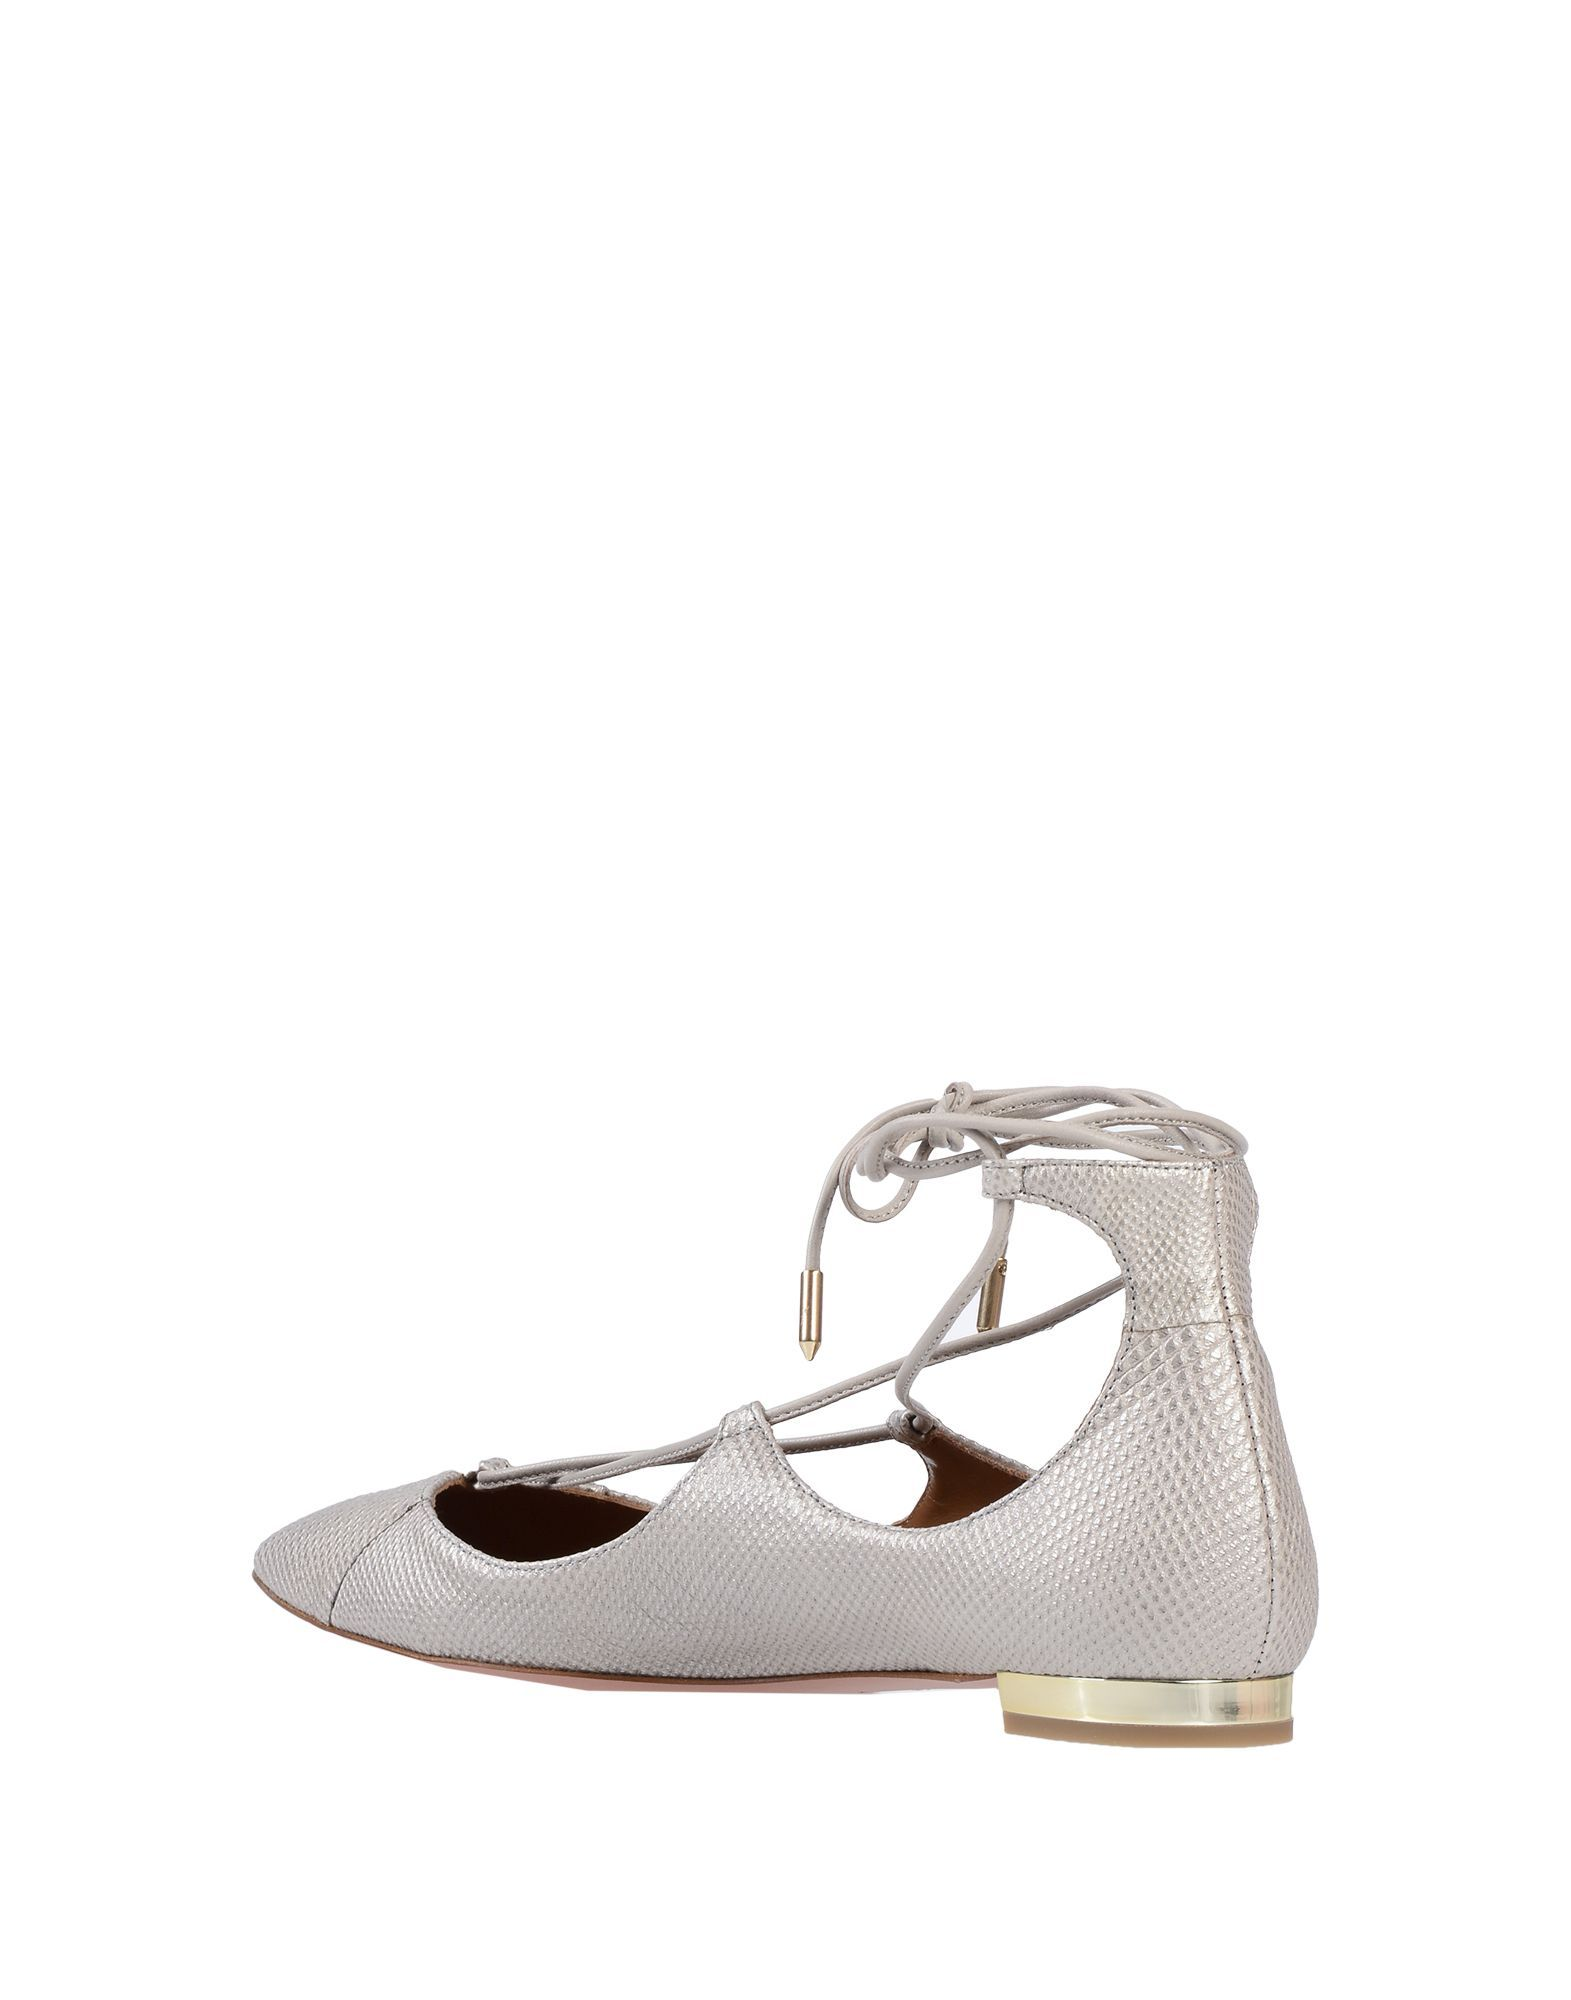 Aquazzura Light Grey Printed Leather Strapped Ballet Flats